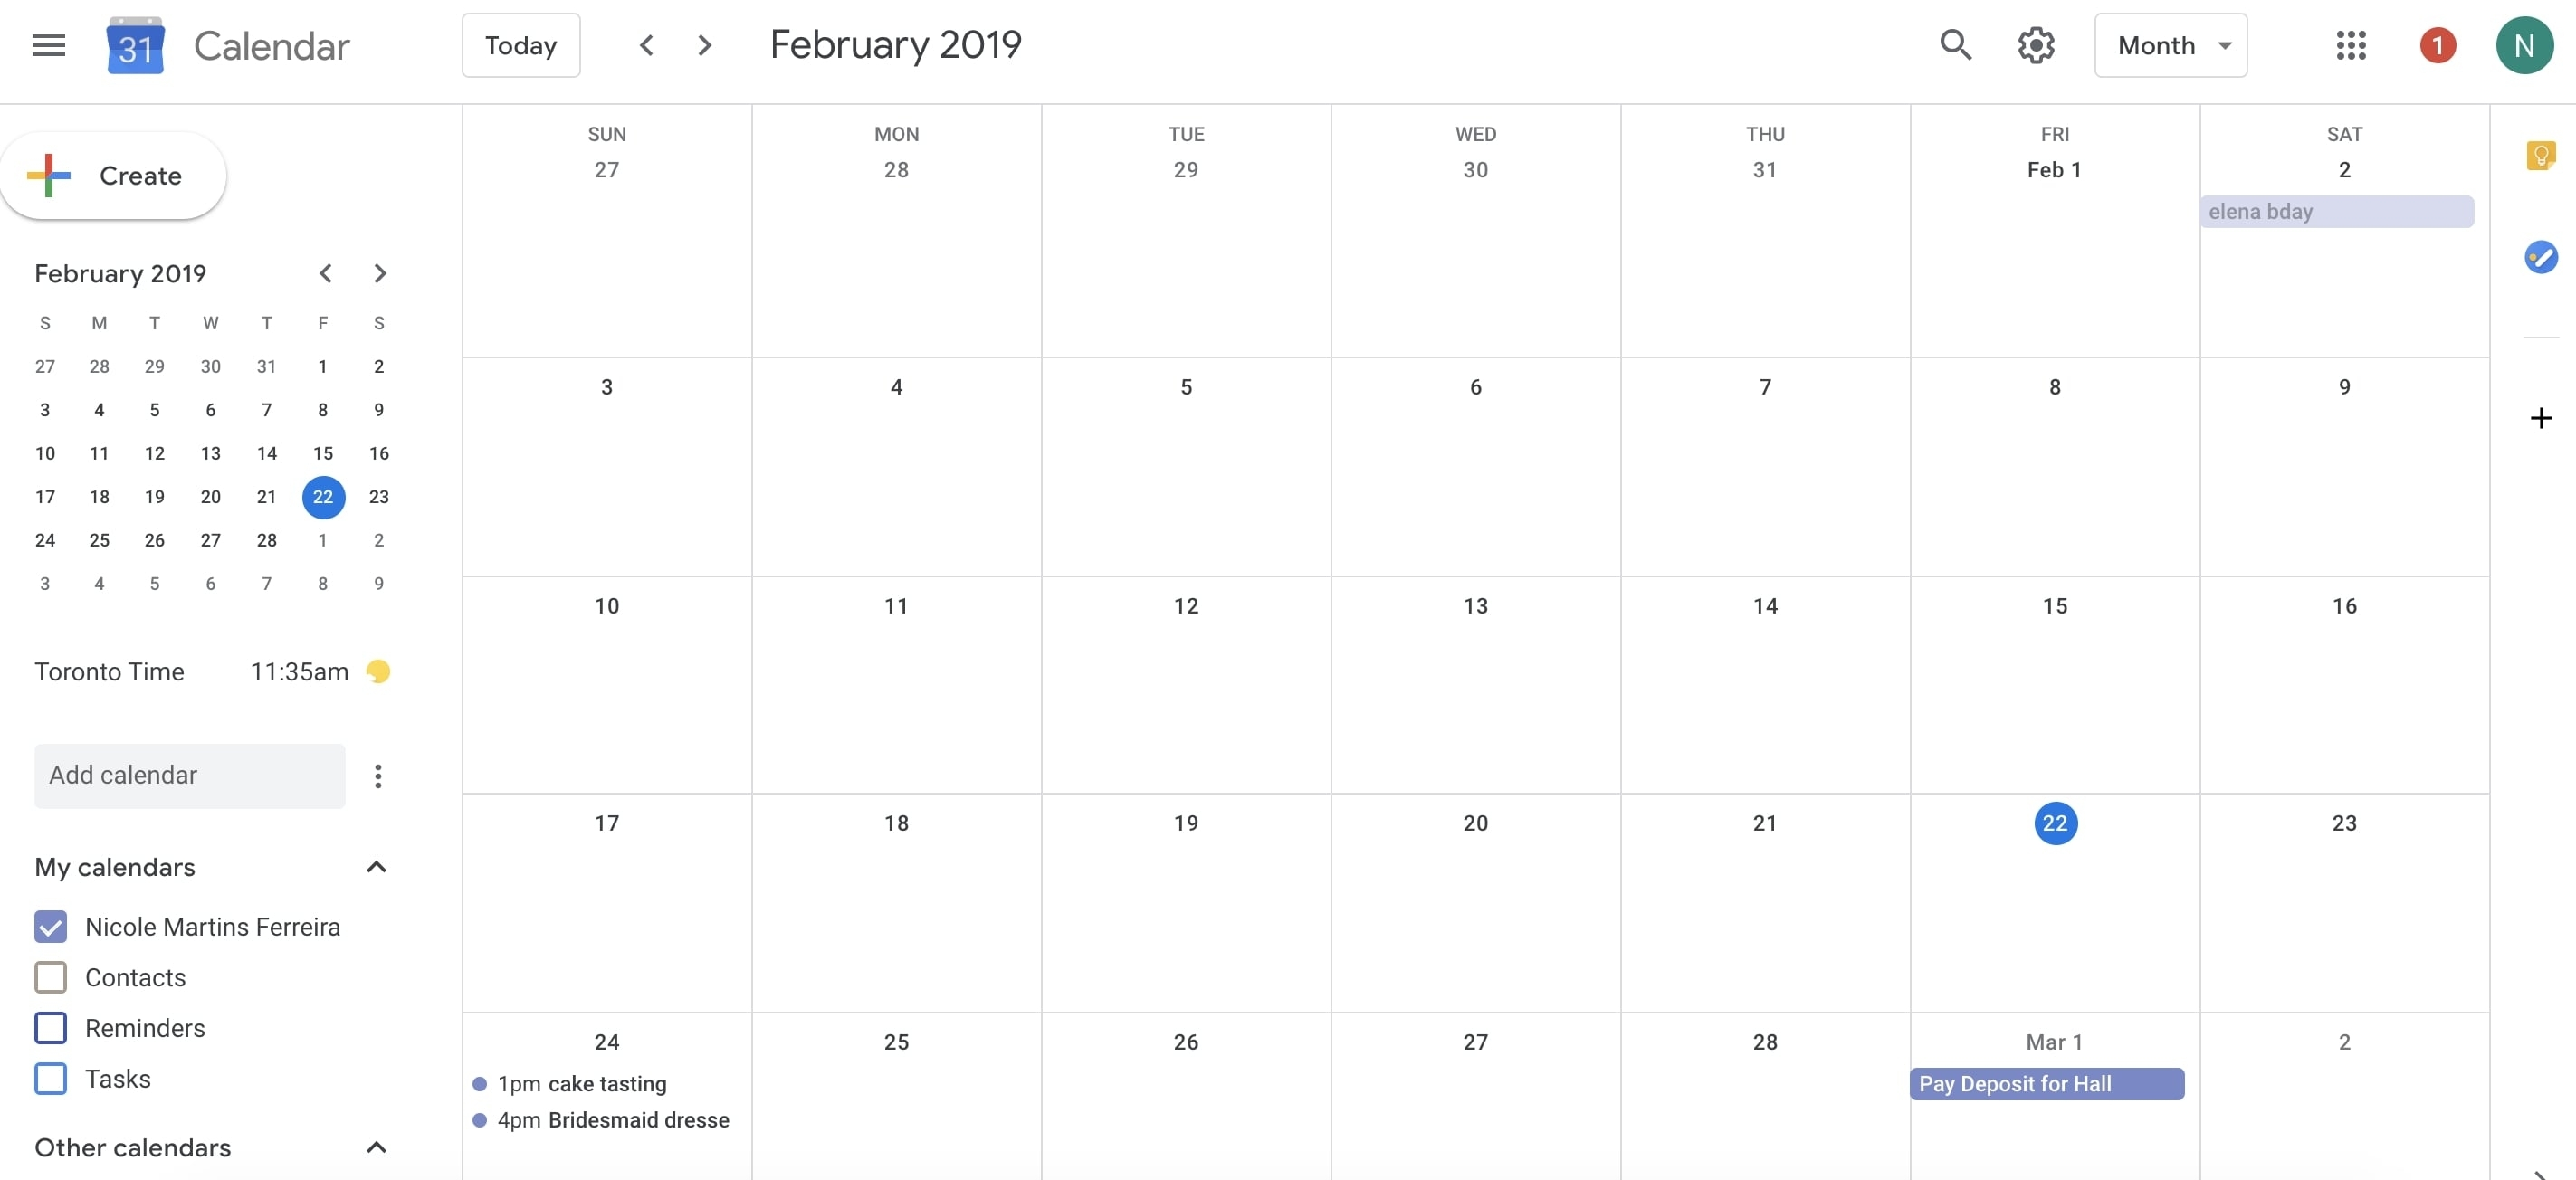 20 Ways To Use Google Calendar To Maximize Your Day In 2019 intended for Birthday Time Slot Scheduling Calendar